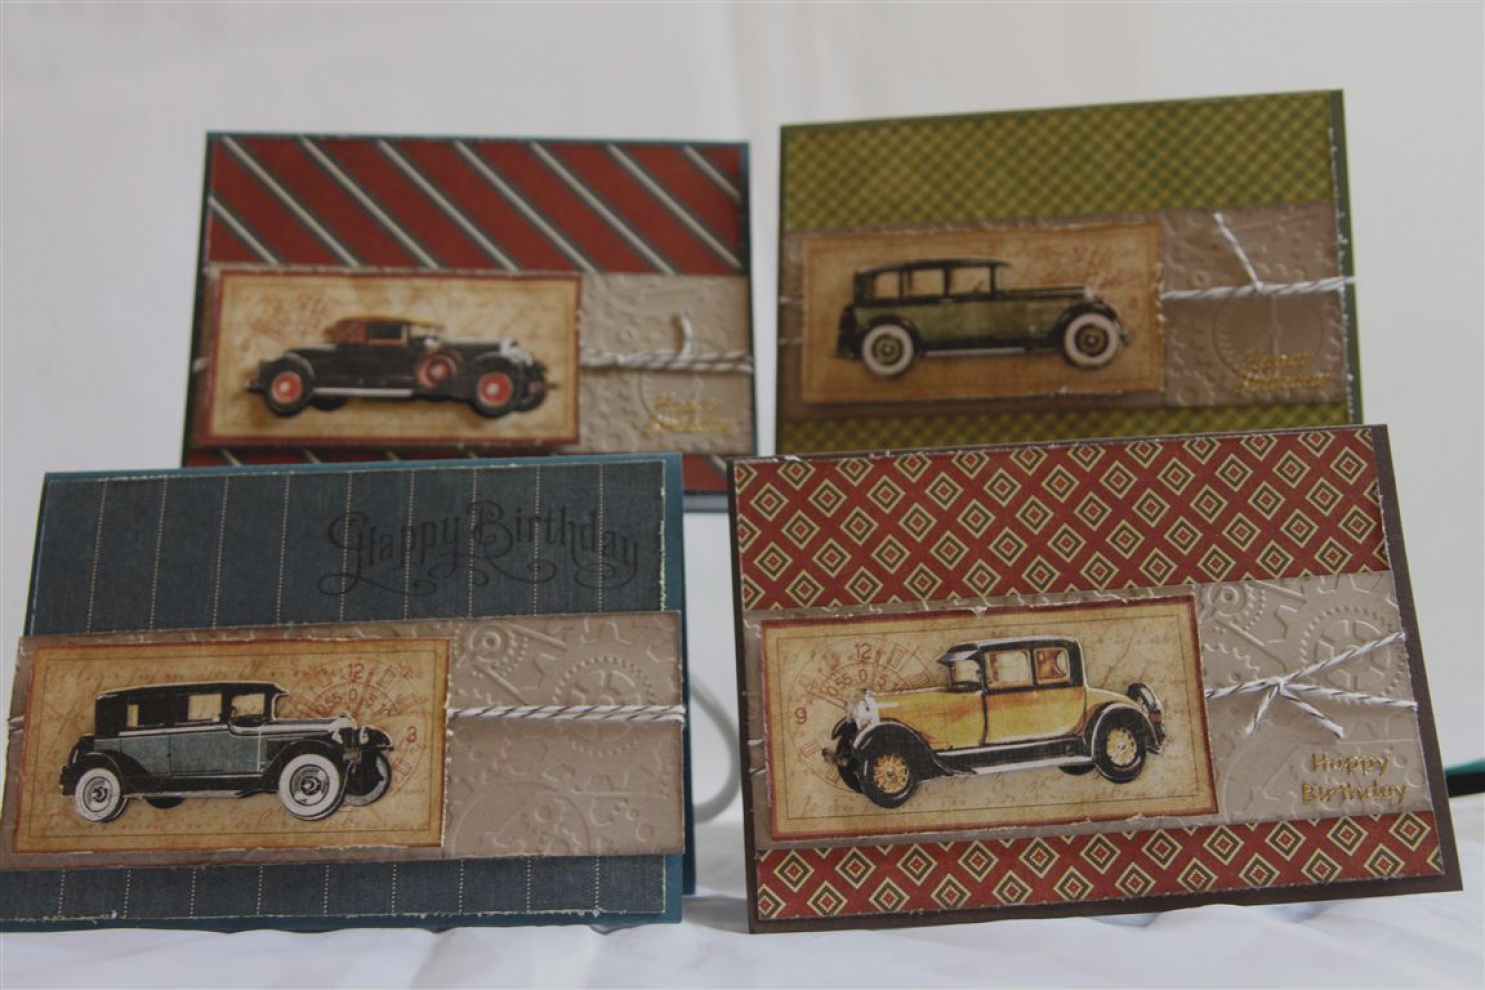 birthday card ideas for men ; pictures-handmade-birthday-cards-for-men-ideas-mens-card-helens-designs